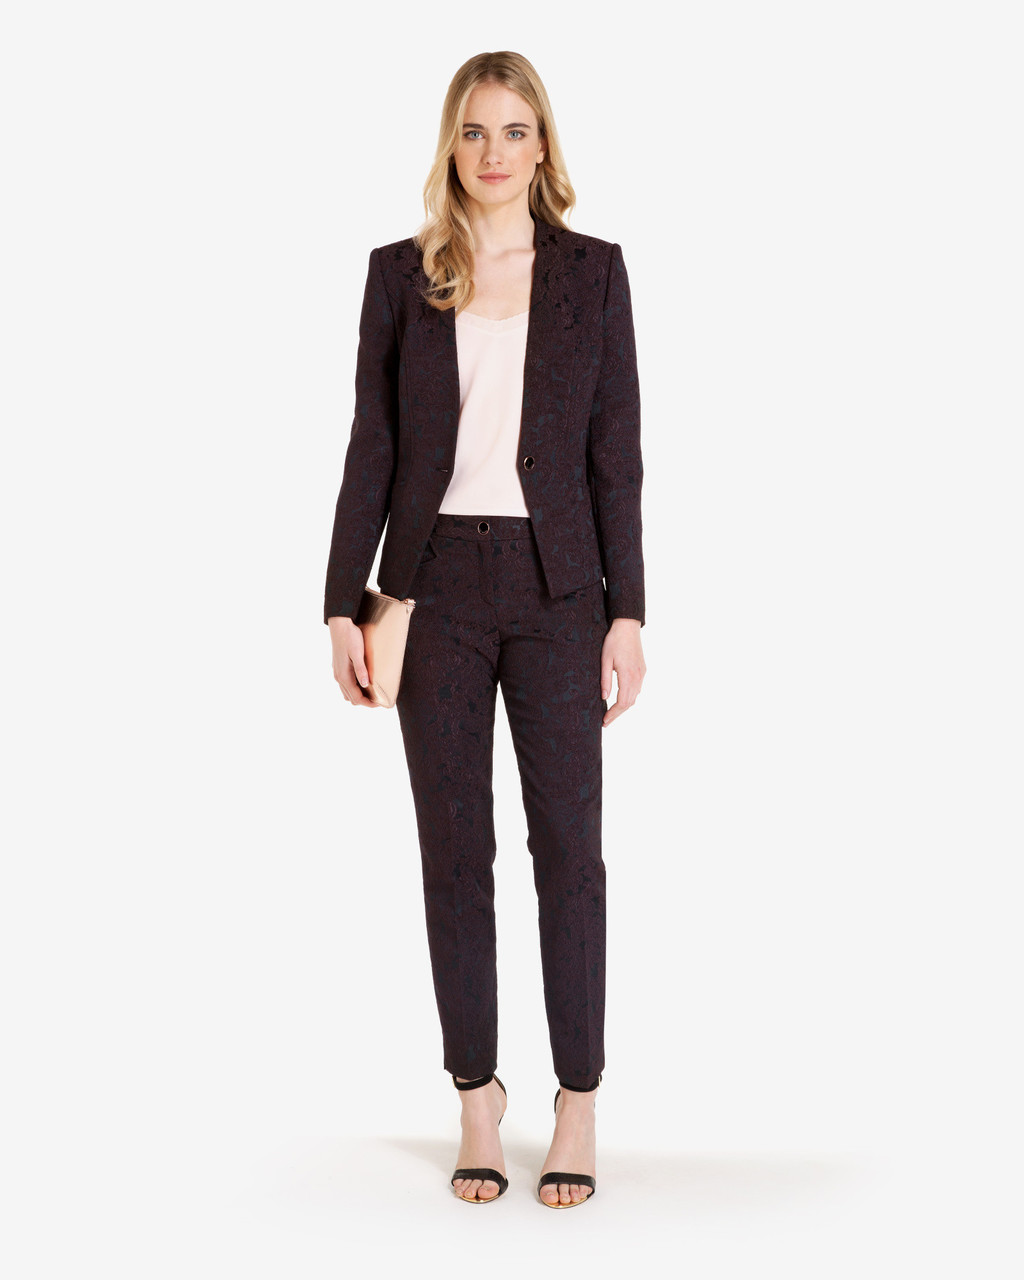 Floral Jacquard Suit Trousers Deep Purple - pattern: plain; waist: mid/regular rise; predominant colour: black; occasions: work; length: ankle length; fibres: polyester/polyamide - 100%; fit: slim leg; pattern type: fabric; texture group: brocade/jacquard; style: standard; season: a/w 2016